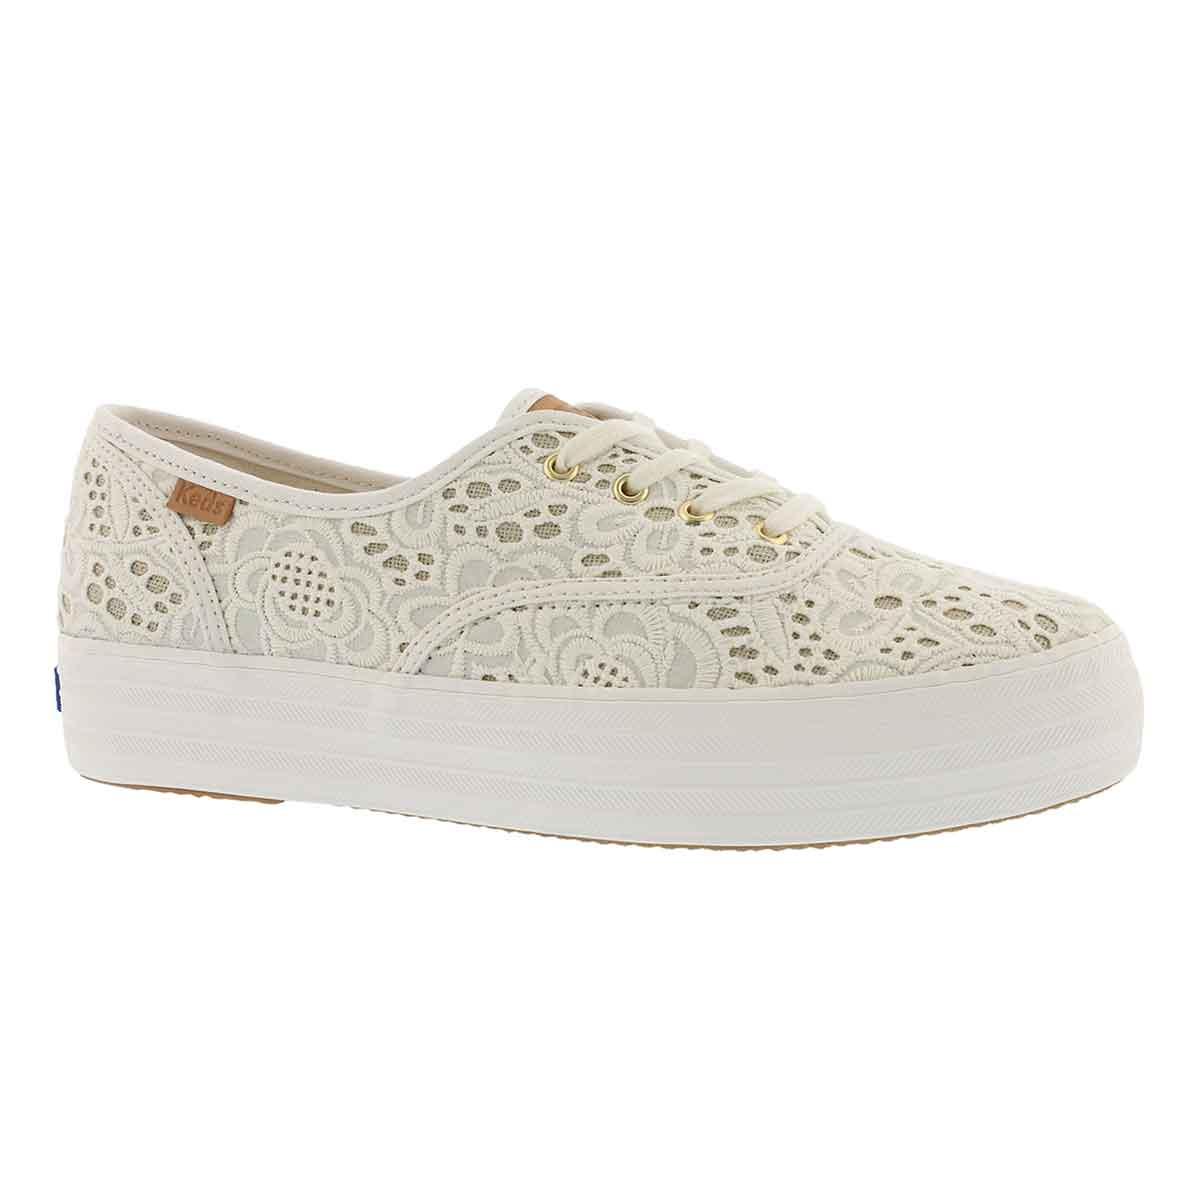 Women's TRIPLE EMBROIDERED CROCHET sneakers